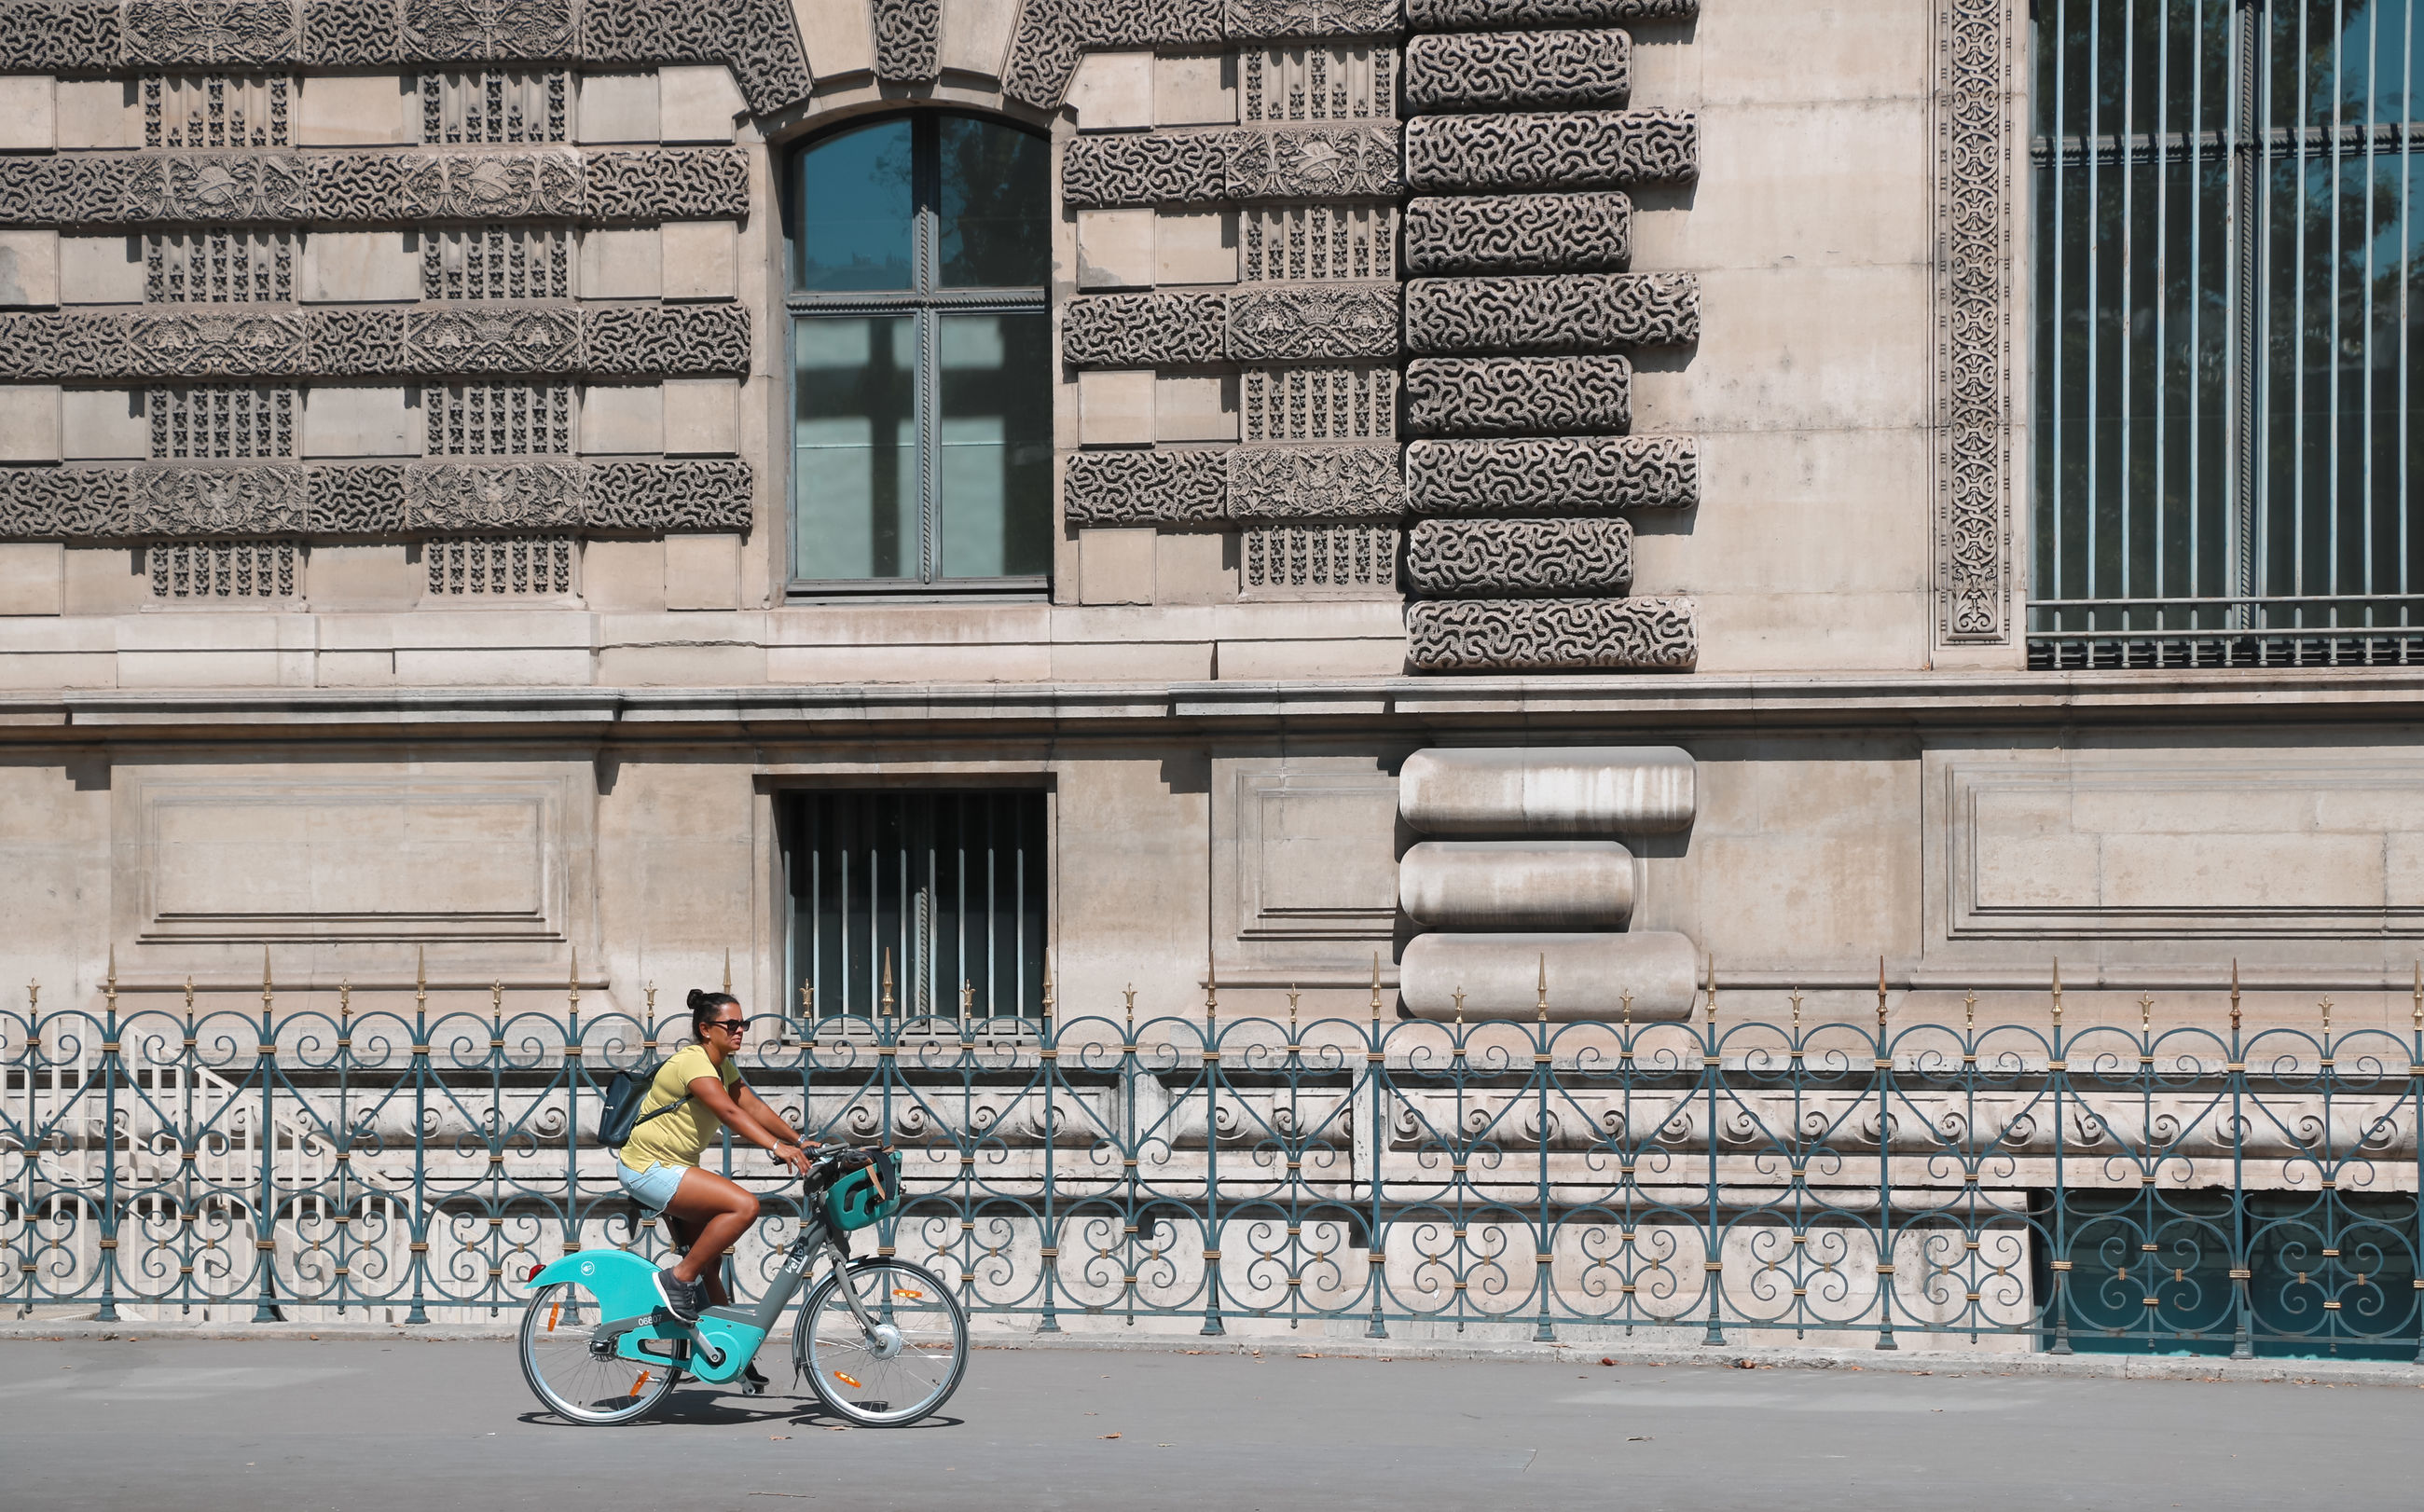 architecture, bicycle, building exterior, one person, built structure, city, full length, riding, transportation, ride, sport, day, real people, lifestyles, building, cycling, land vehicle, activity, leisure activity, outdoors, office building exterior